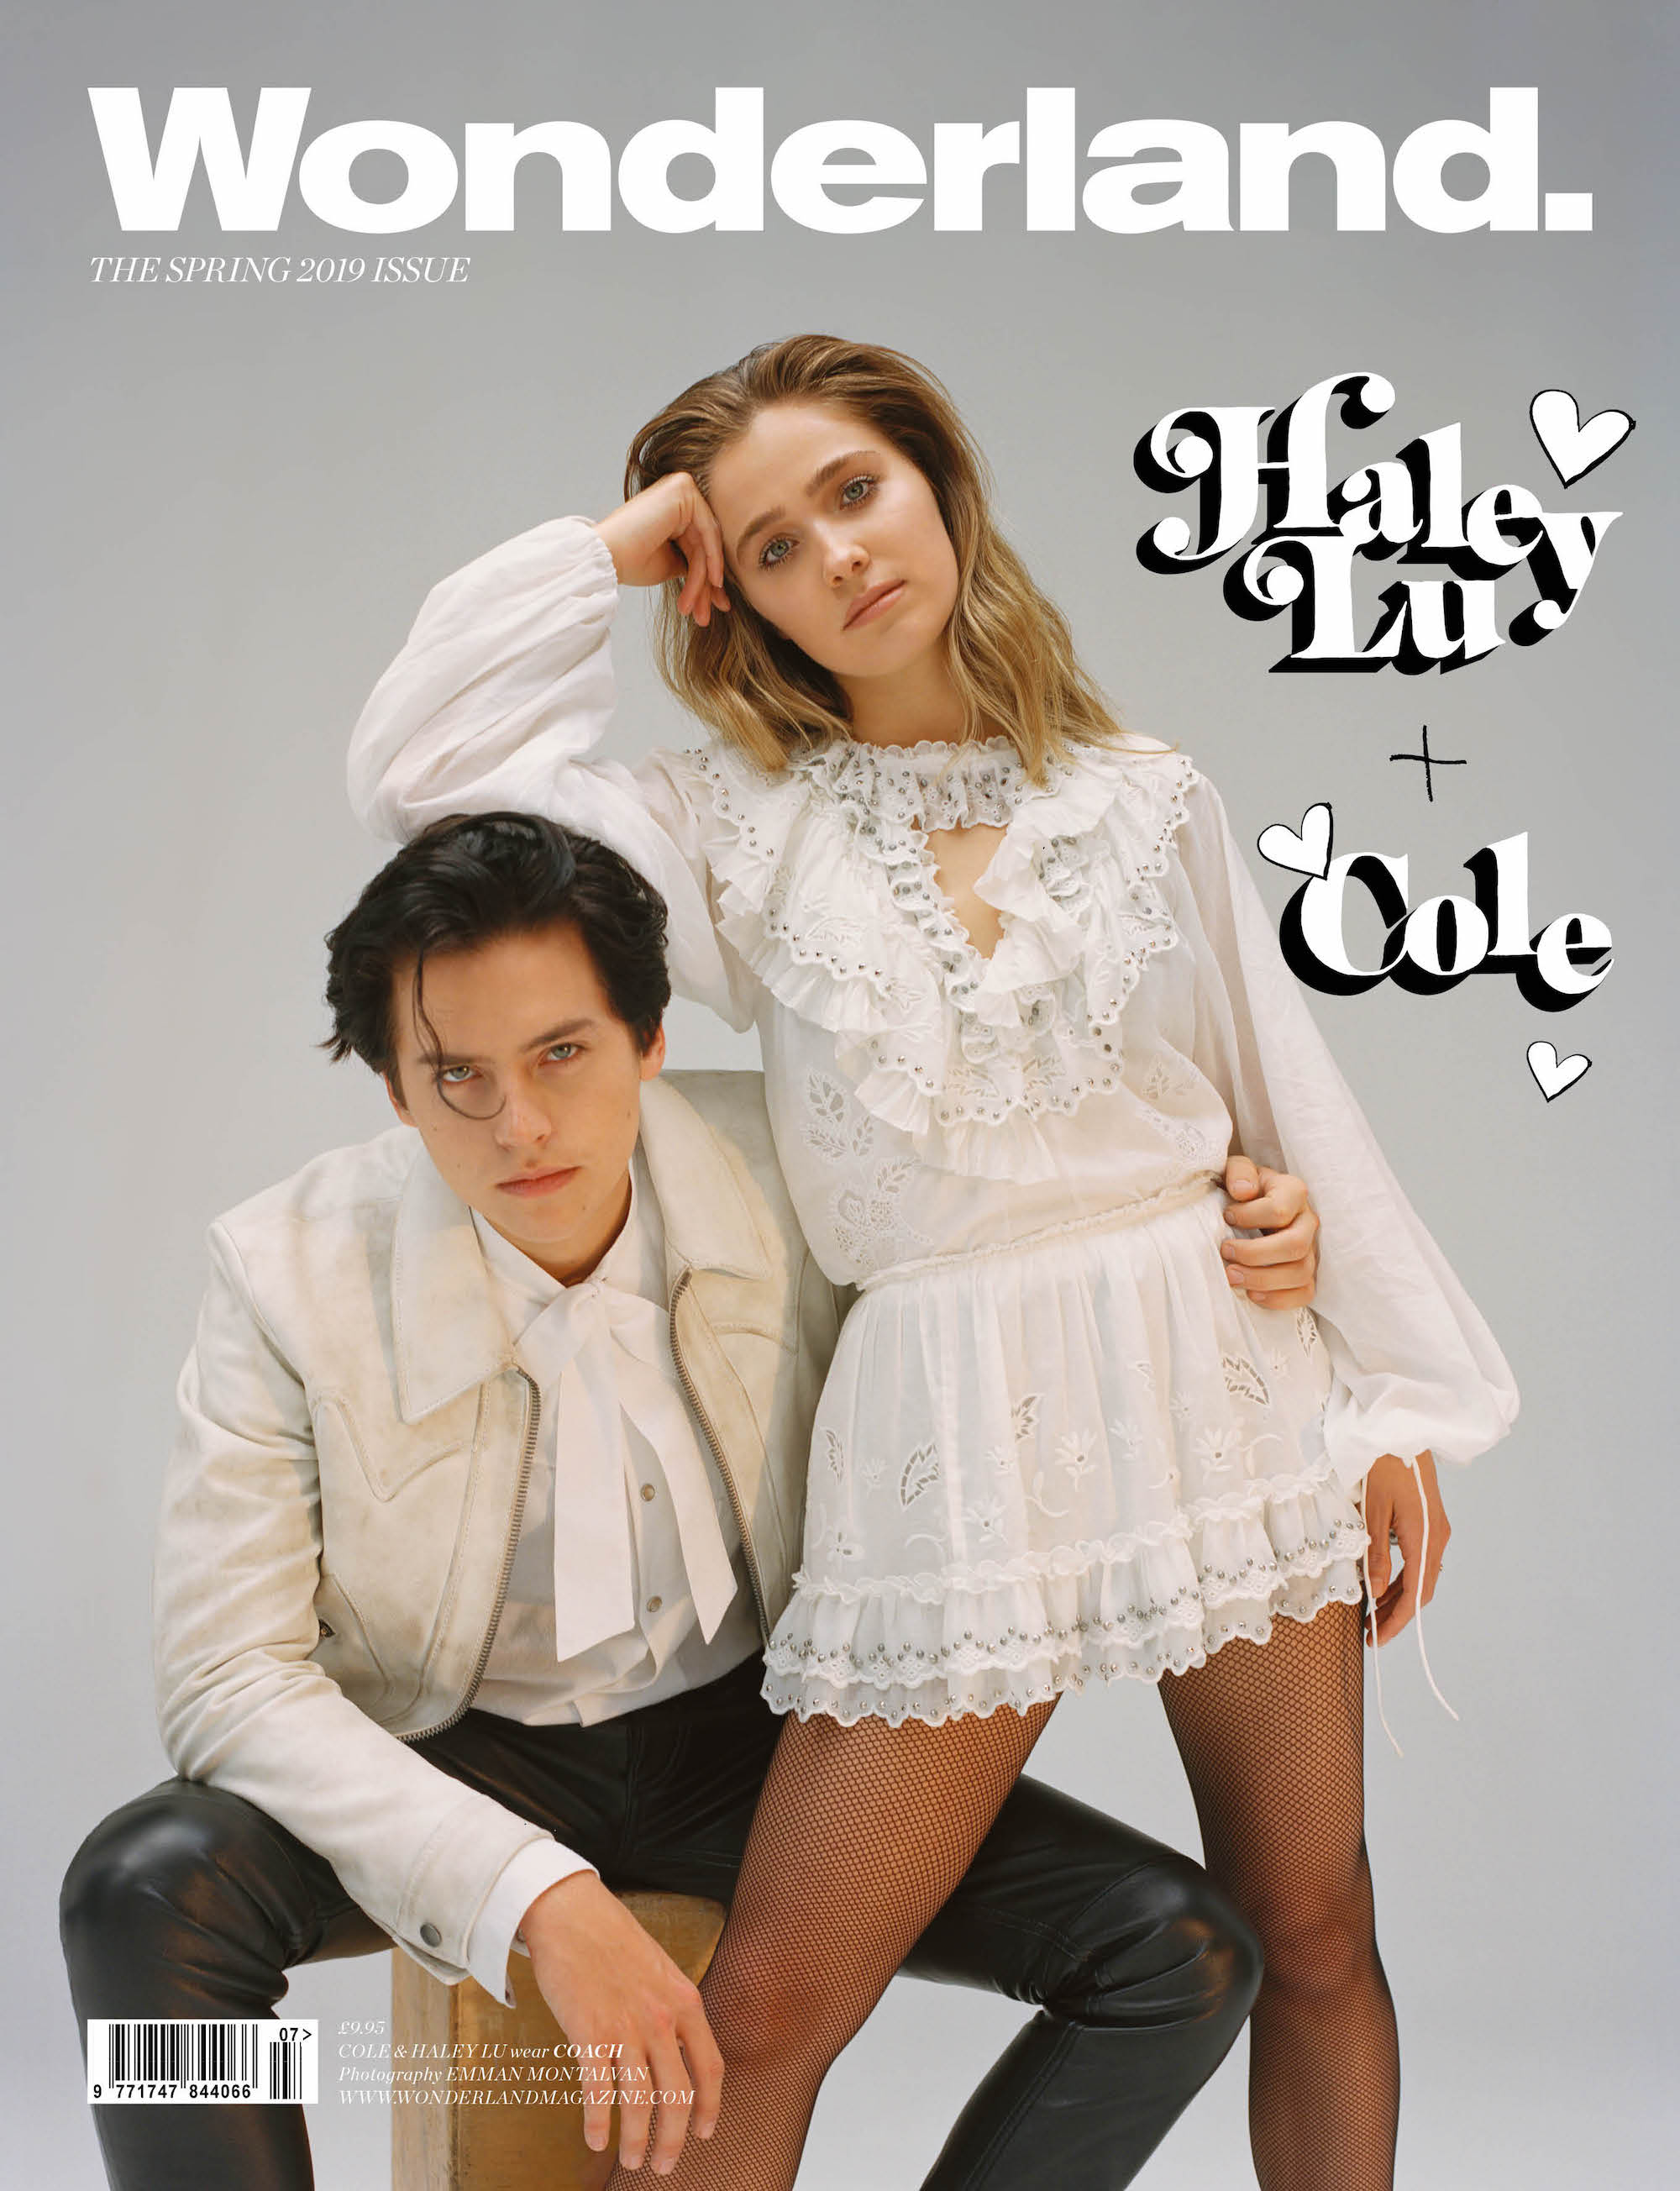 Cole Sprouse and Haley Lu Richardson Wonderland Spring 19 cover